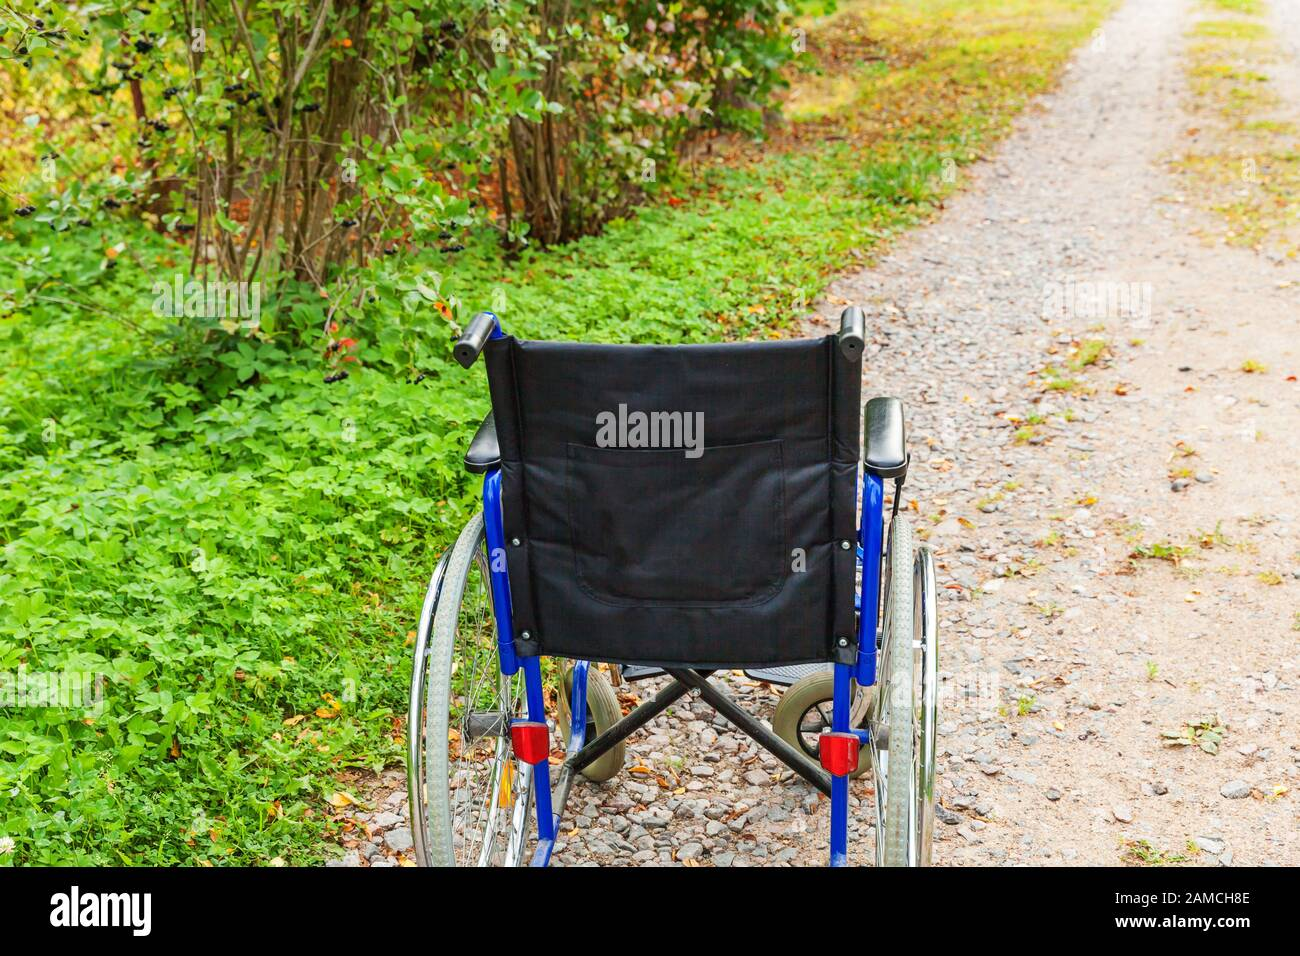 Empty wheelchair standing on road in hospital park waiting for patient services. Invalid chair for disabled people parked outdoor in nature. Handicap accessible symbol. Health care medical concept Stock Photo